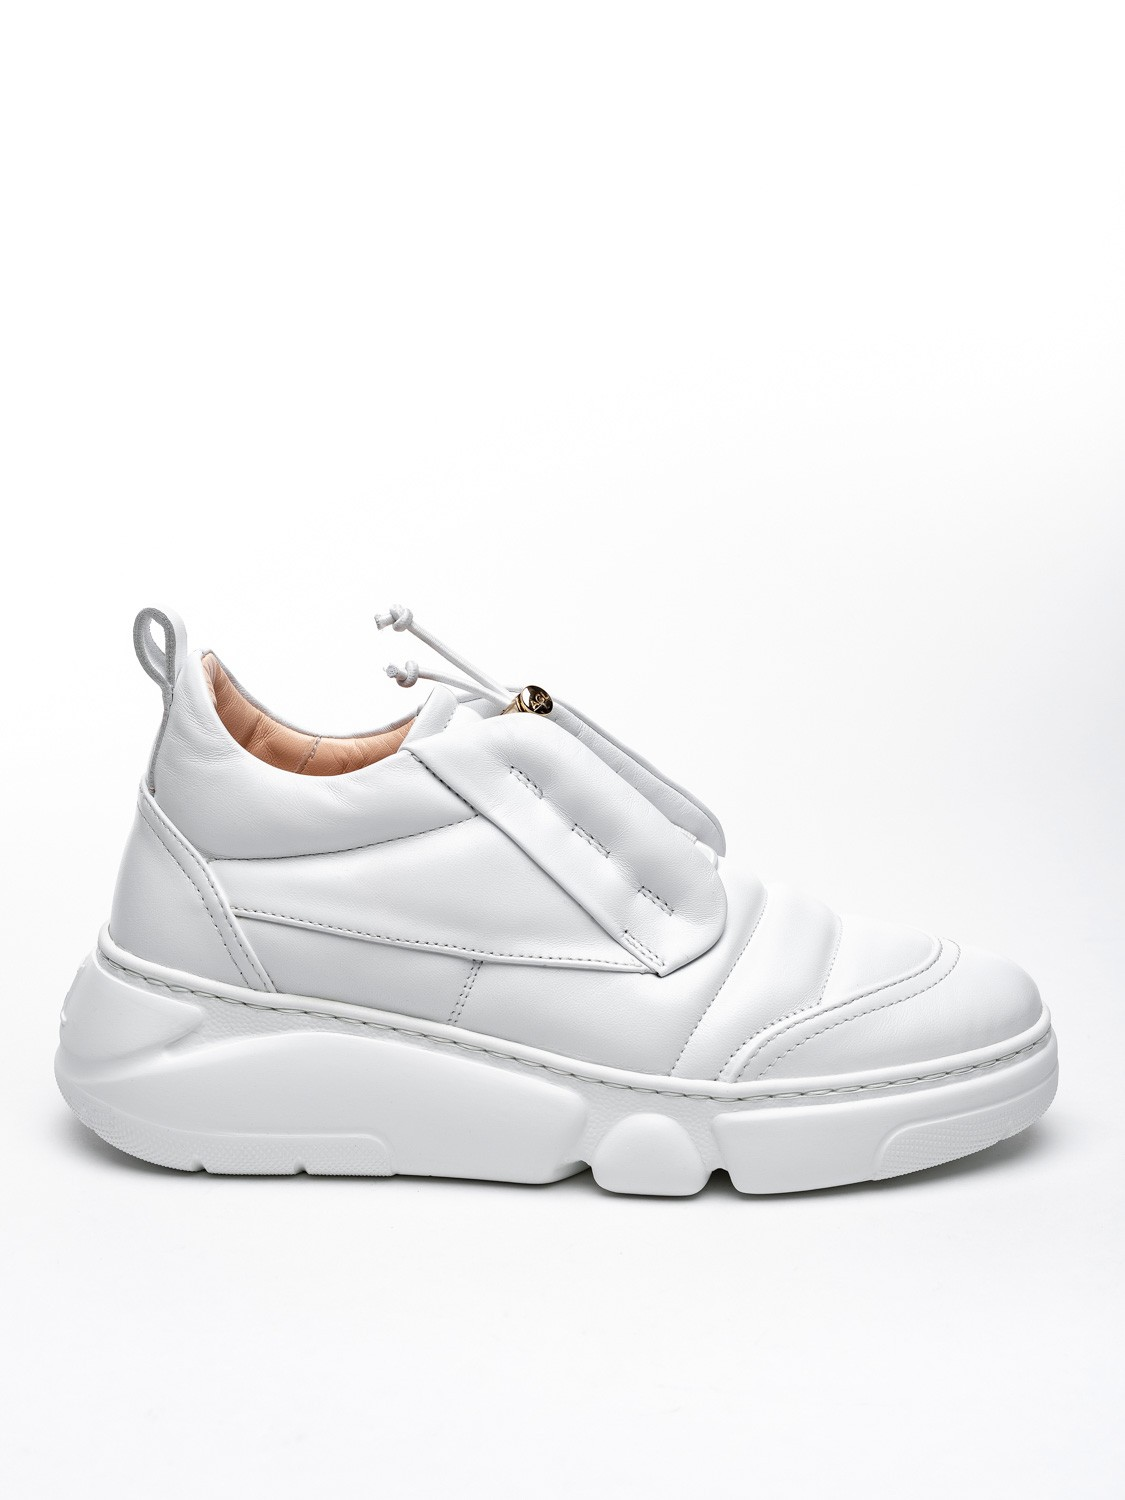 l1-agl-gynaikeia-dermatina-chunky-sneakers-with-drawstring.jpg